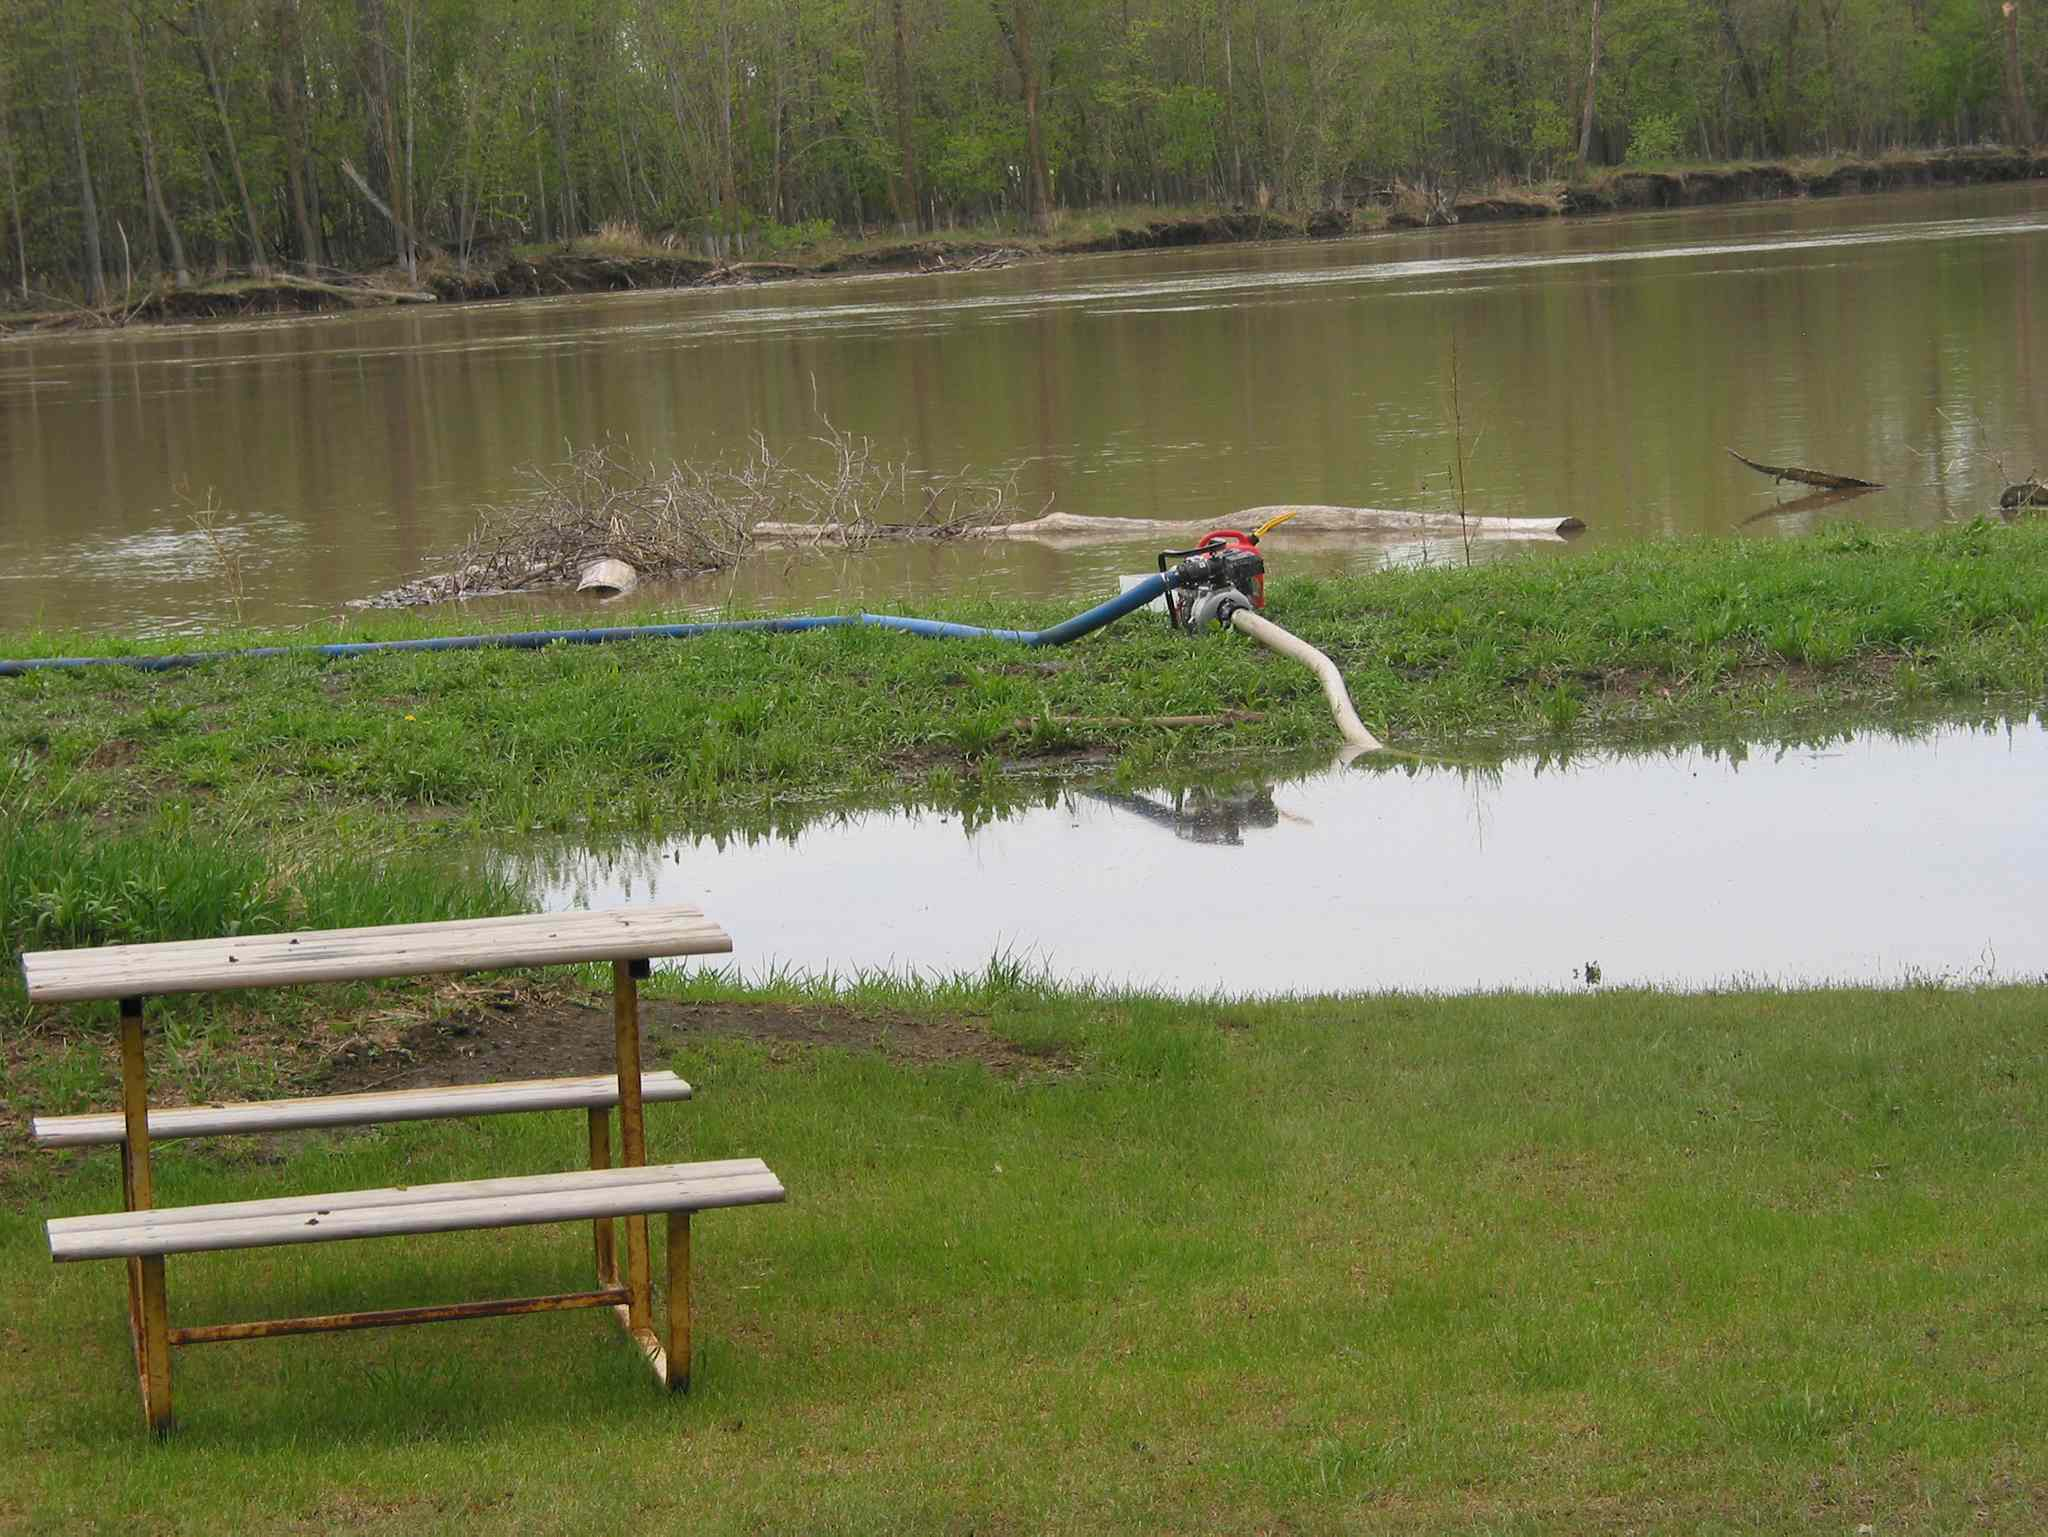 Flood water was being pumped back into the Assiniboine River at the Welcomestop campground in the RM of St. Francois Xavier on May 28.